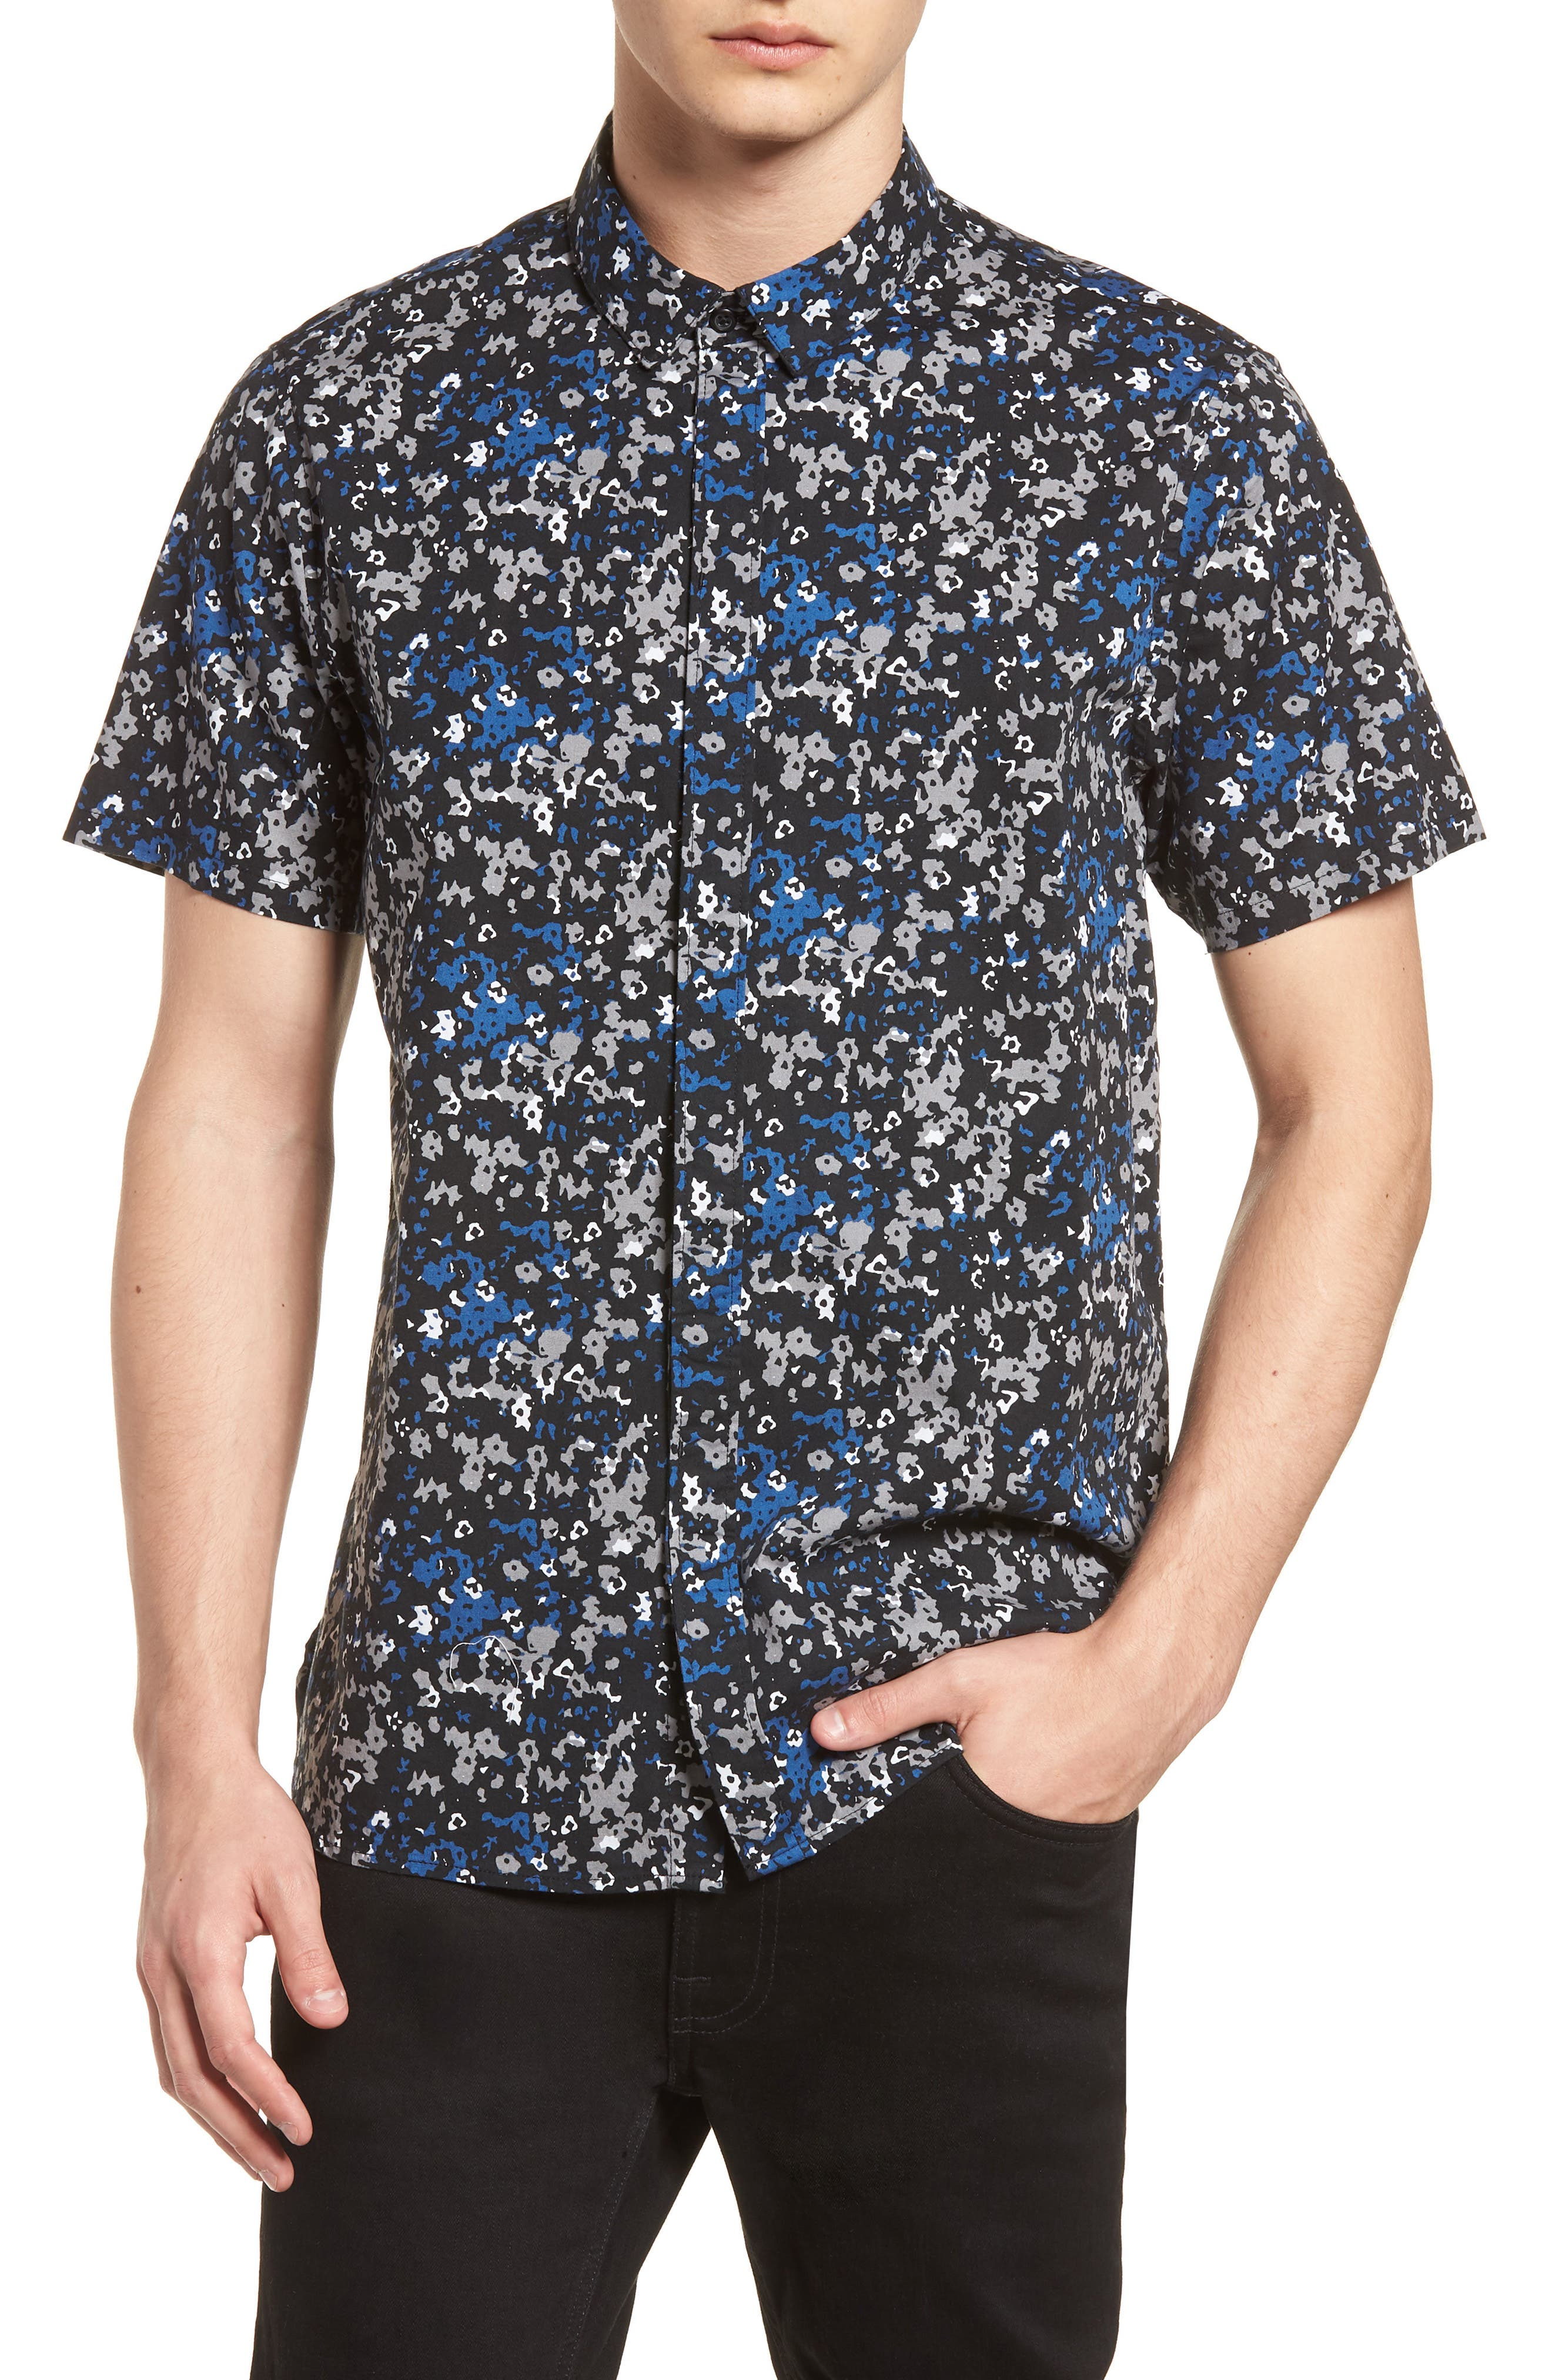 Fowler Woven Shirt,                             Main thumbnail 1, color,                             Black Micro Floral